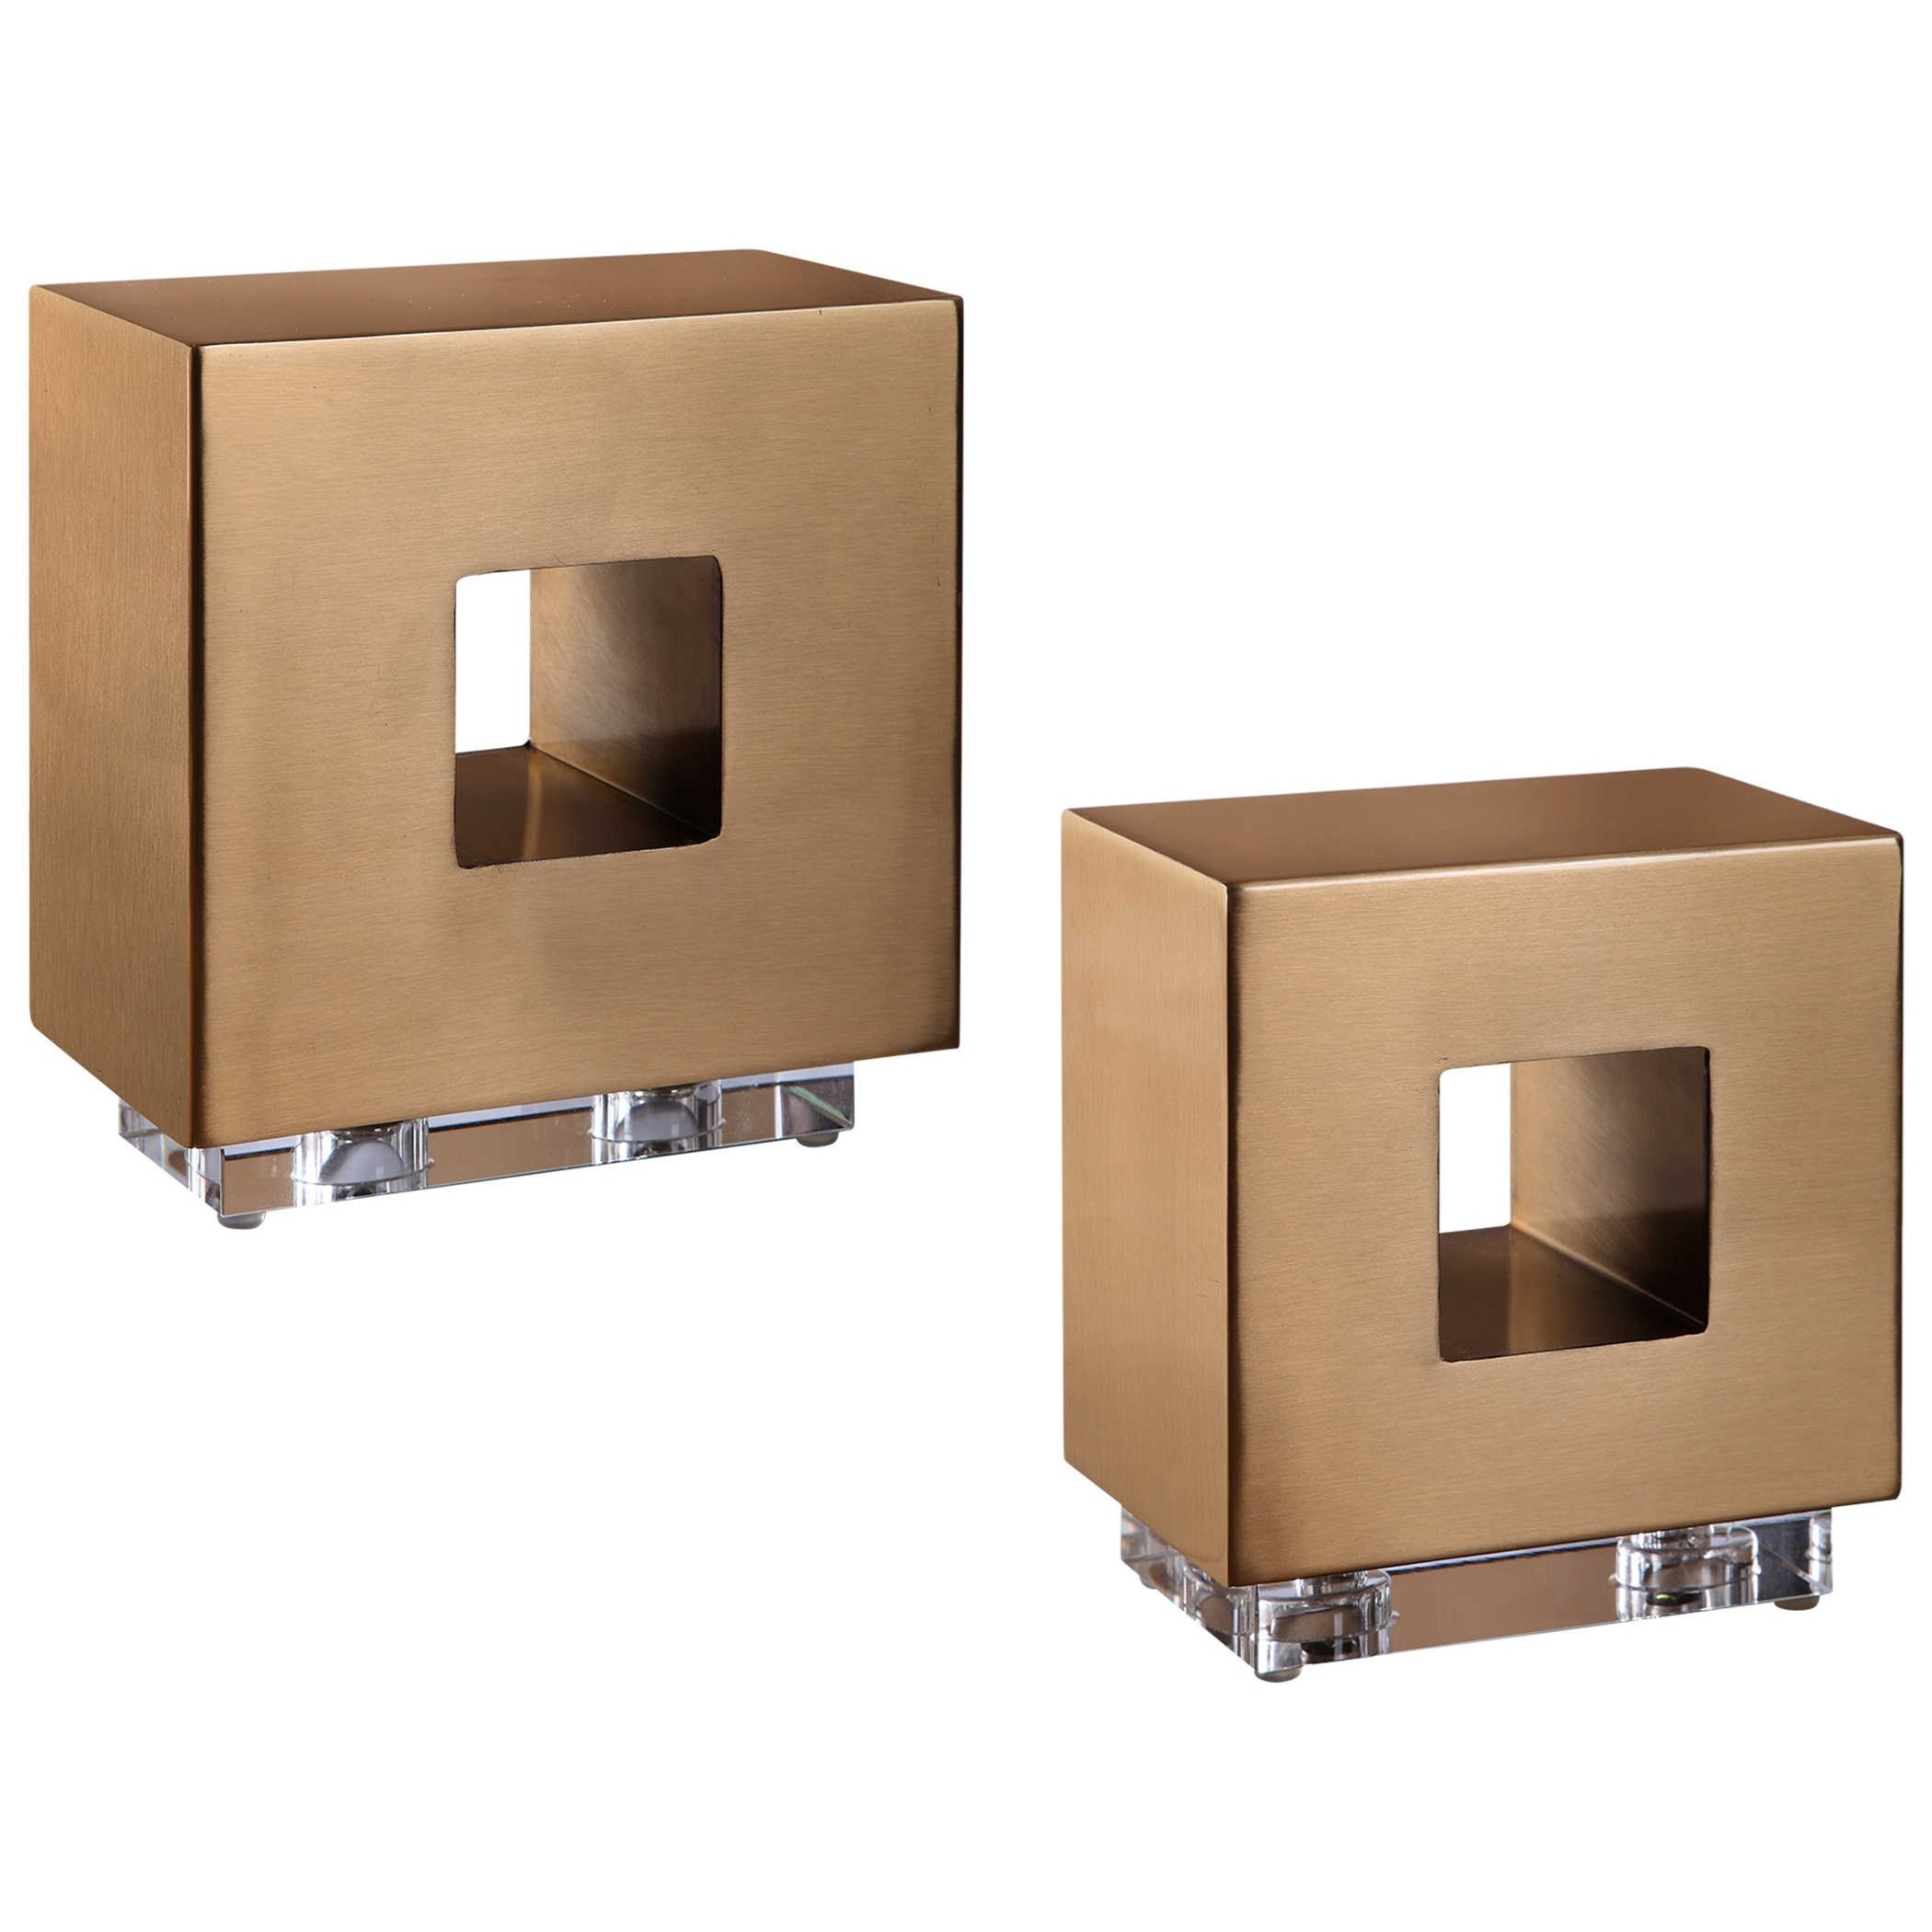 Accessories Rooney Brass Cubes, S/2 by Uttermost at Suburban Furniture